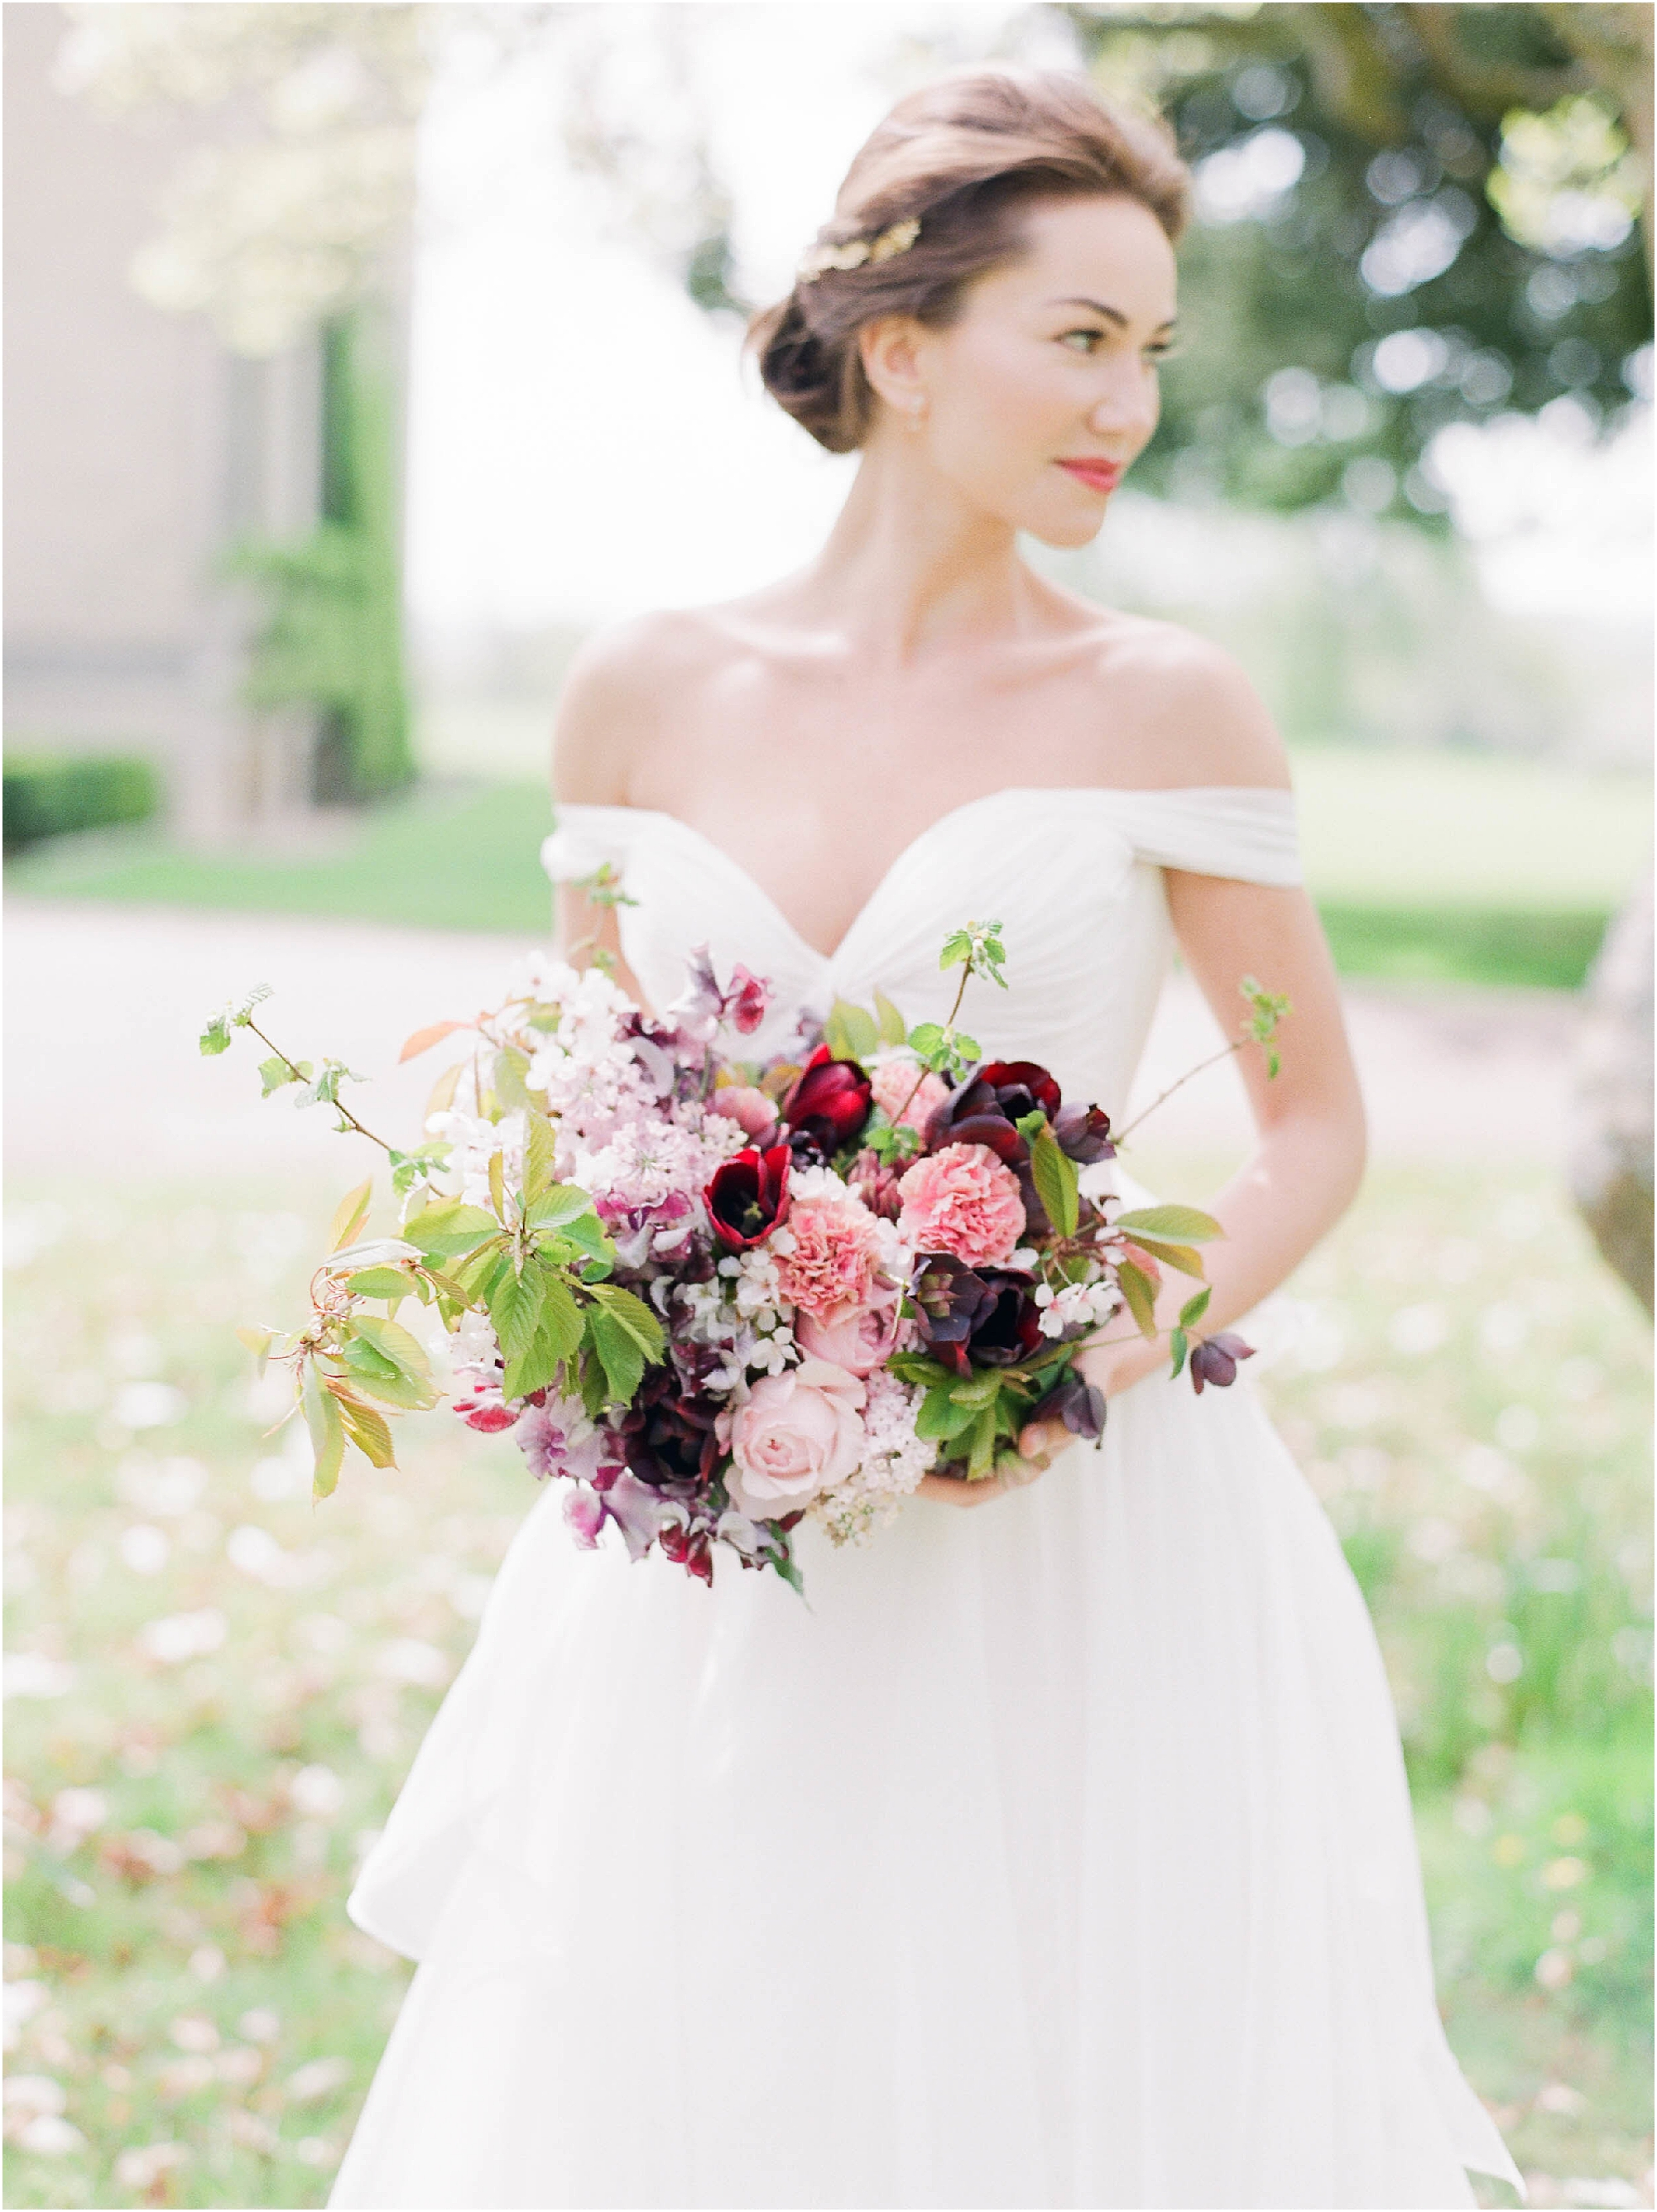 Bride holding bouquet of maroon and pink